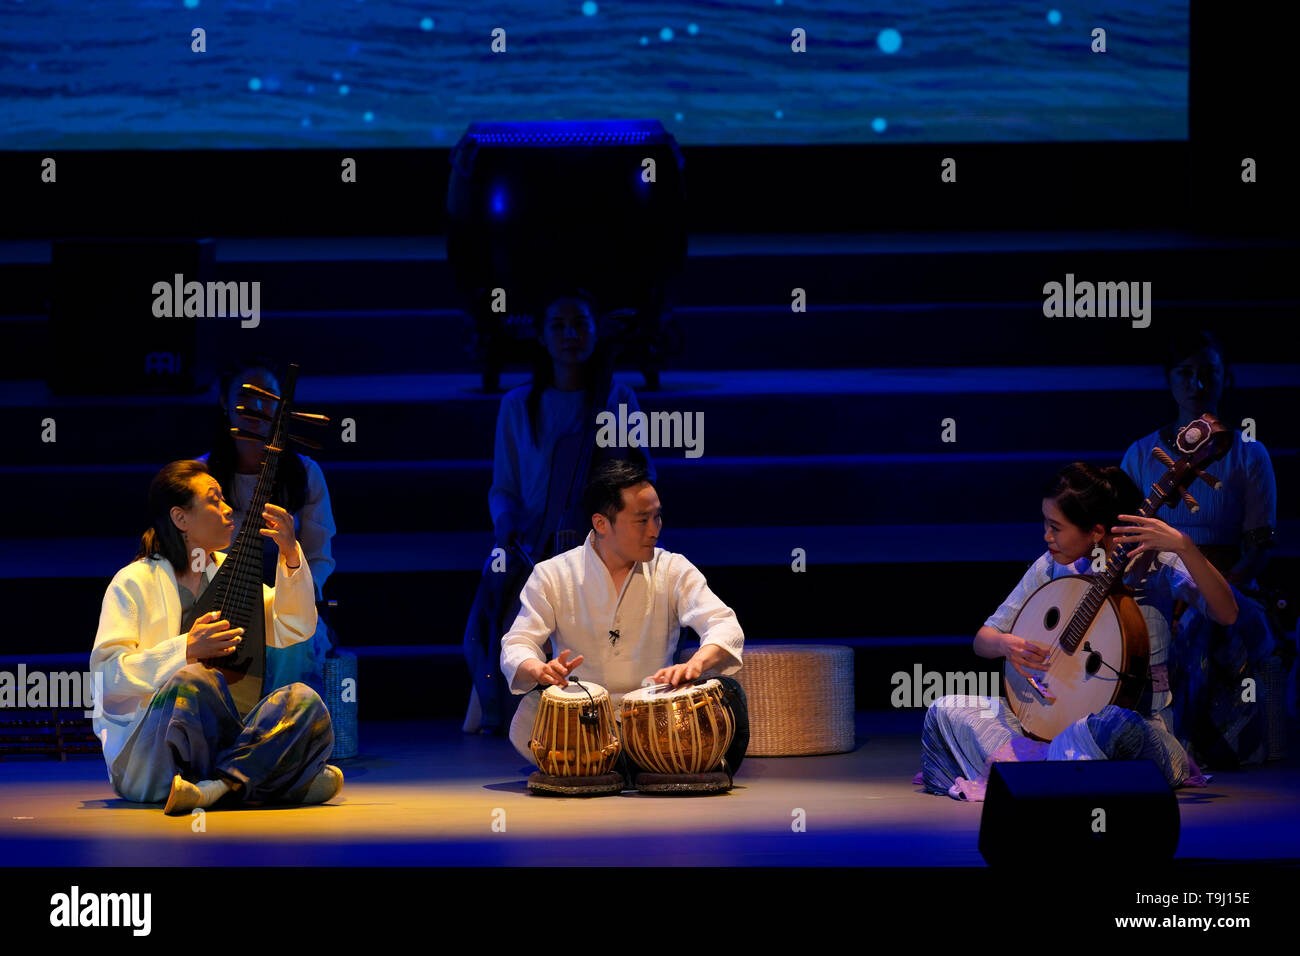 Beijing, China. 18th May, 2019. Actors perform at Peking University in Beijing, capital of China, May 18, 2019. China is holding a rich variety of exhibitions and activities on the culture of Asian countries and regions as well as exchanges among them. Credit: Shen Bohan/Xinhua/Alamy Live News - Stock Image